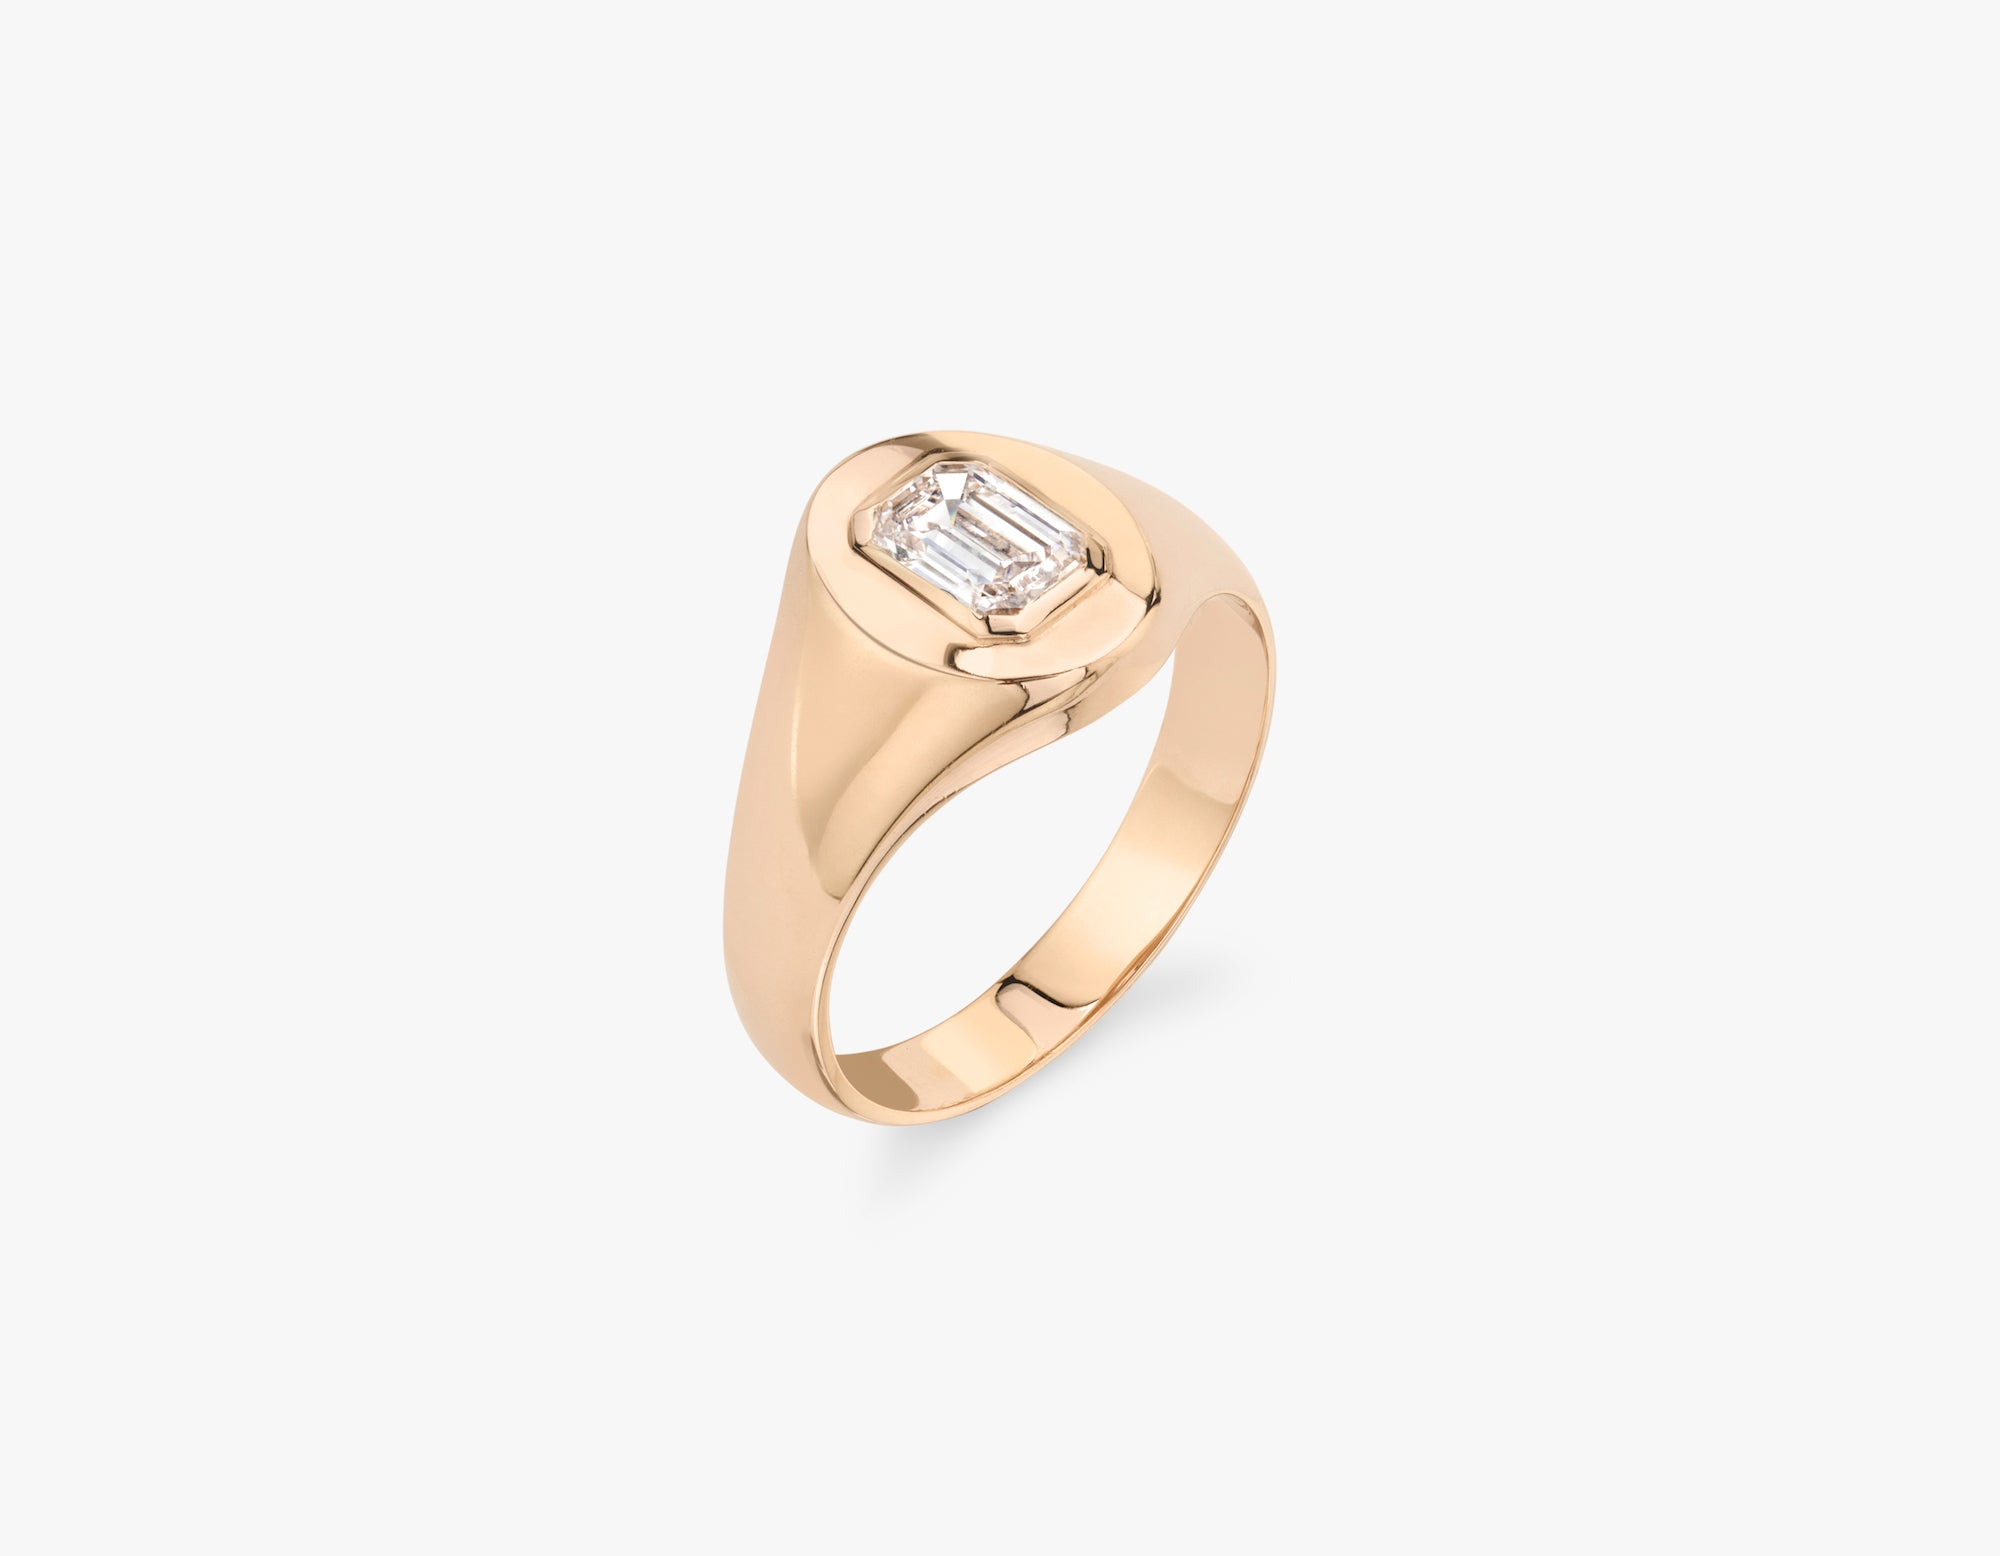 Vrai 14k solid gold classic minimalist Emerald Diamond Signet Ring, 14K Rose Gold